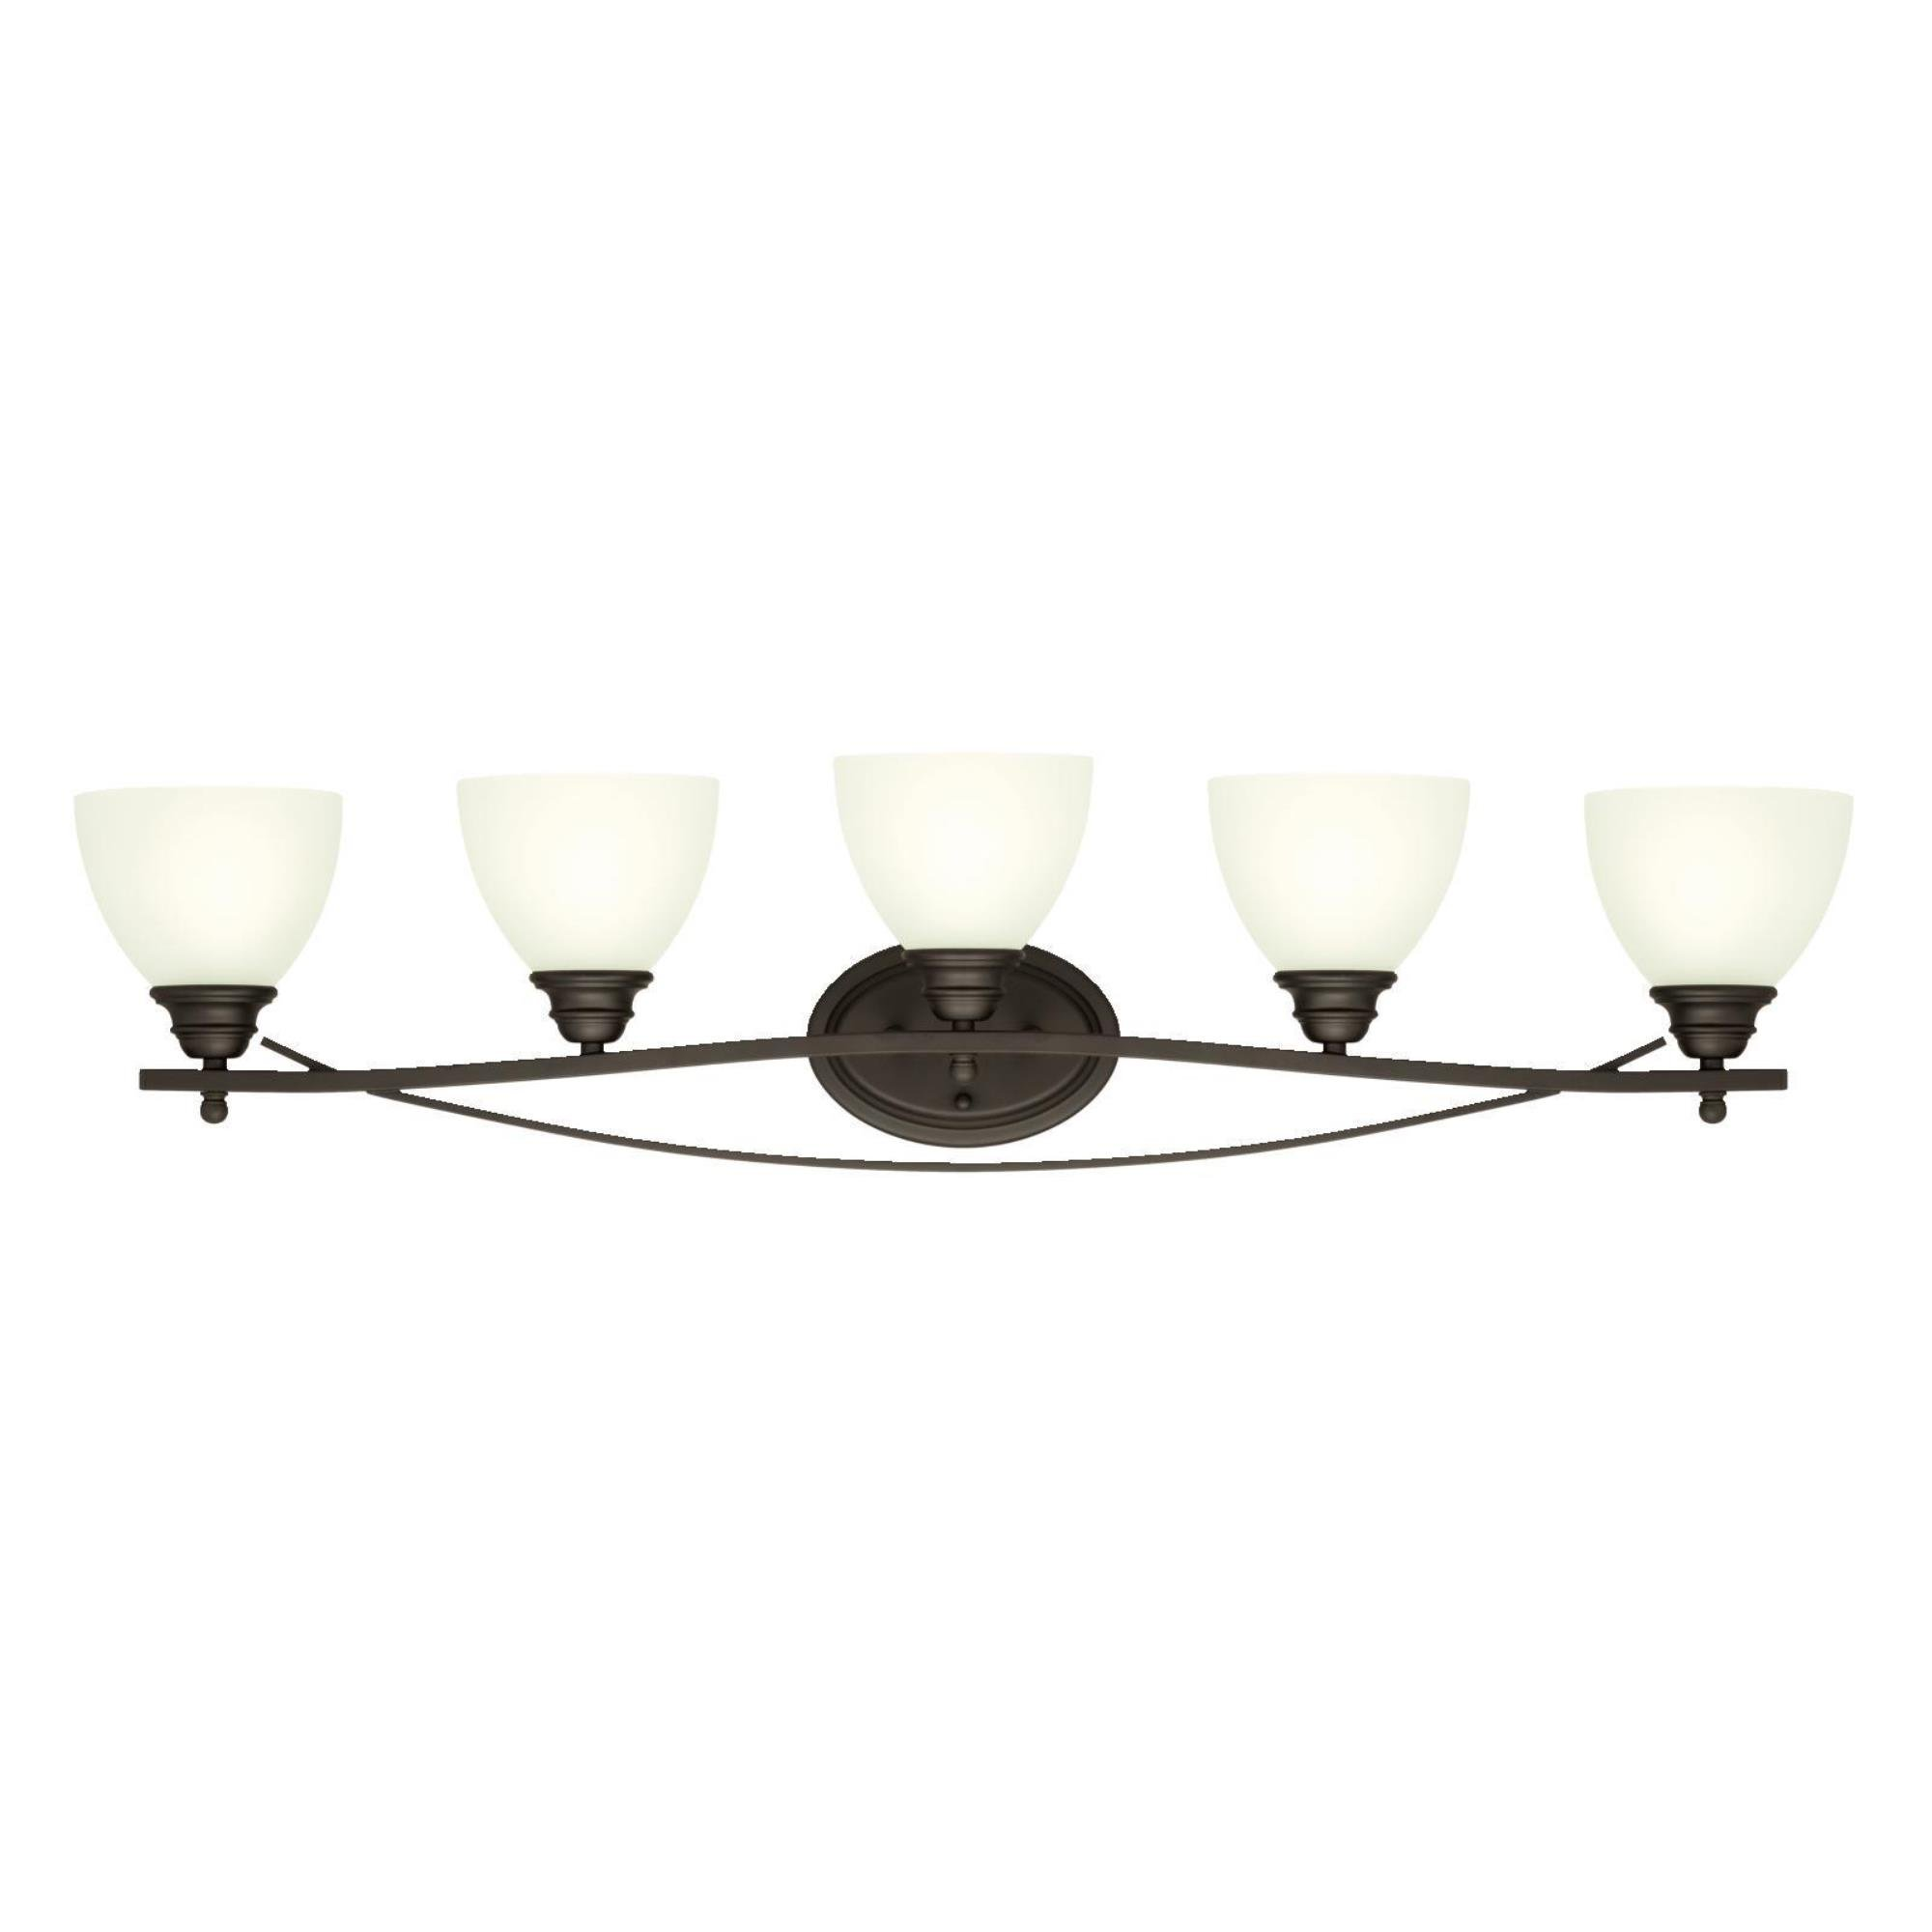 Westinghouse 6303600 Elvaston Five-Light Indoor Wall Fixture, Oil Rubbed Bronze Finish with Frosted Glass by Westinghouse